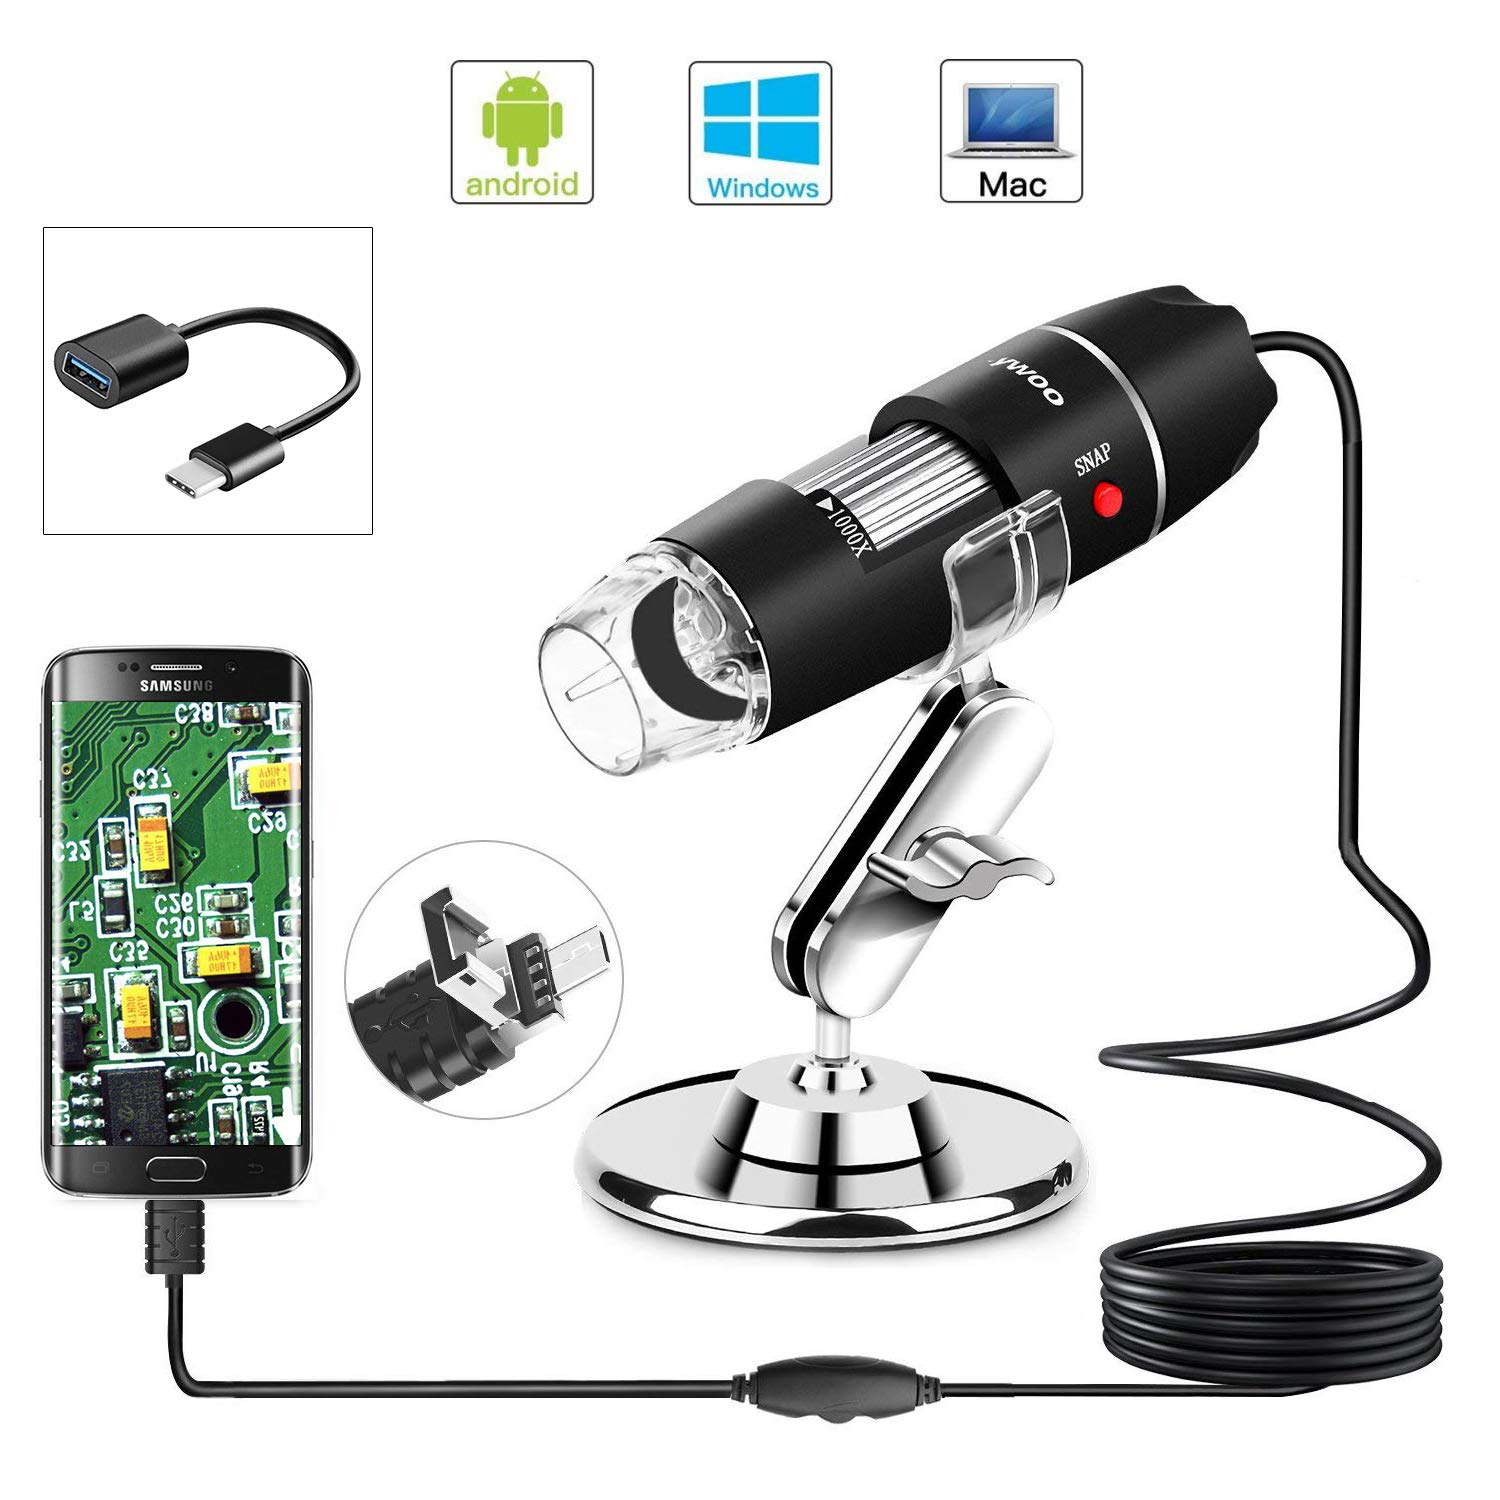 USB Microscope 1000x Zoom 1080p Digital Mini Microscope Camera with OTG Adapter and Metal Stand Compatible for Android Mac Window Linux